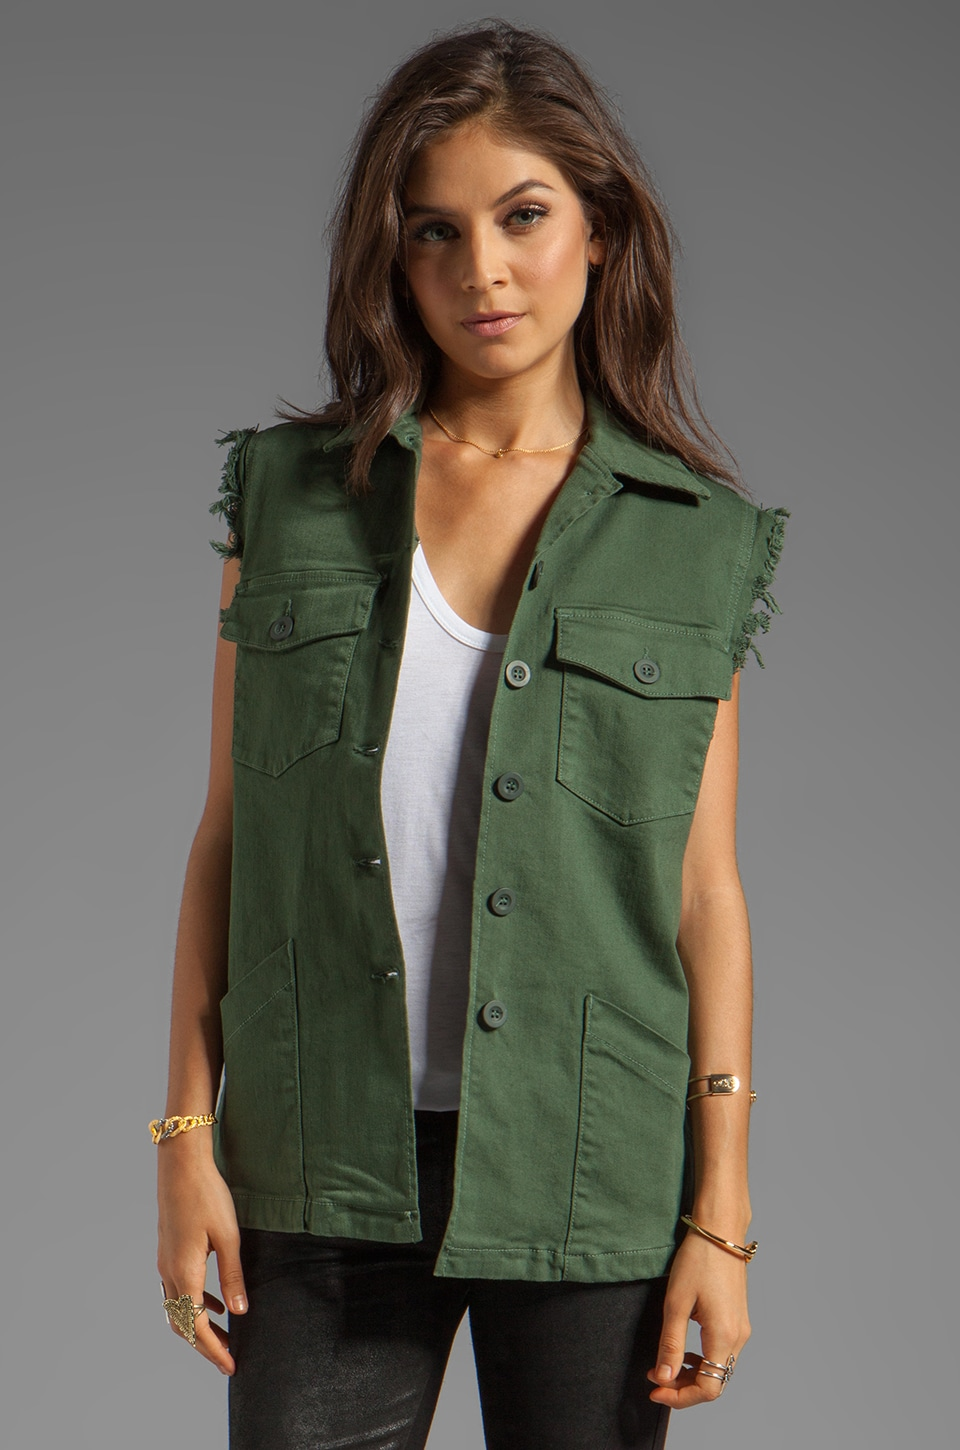 Dakota Collective Salt Vest in Olive